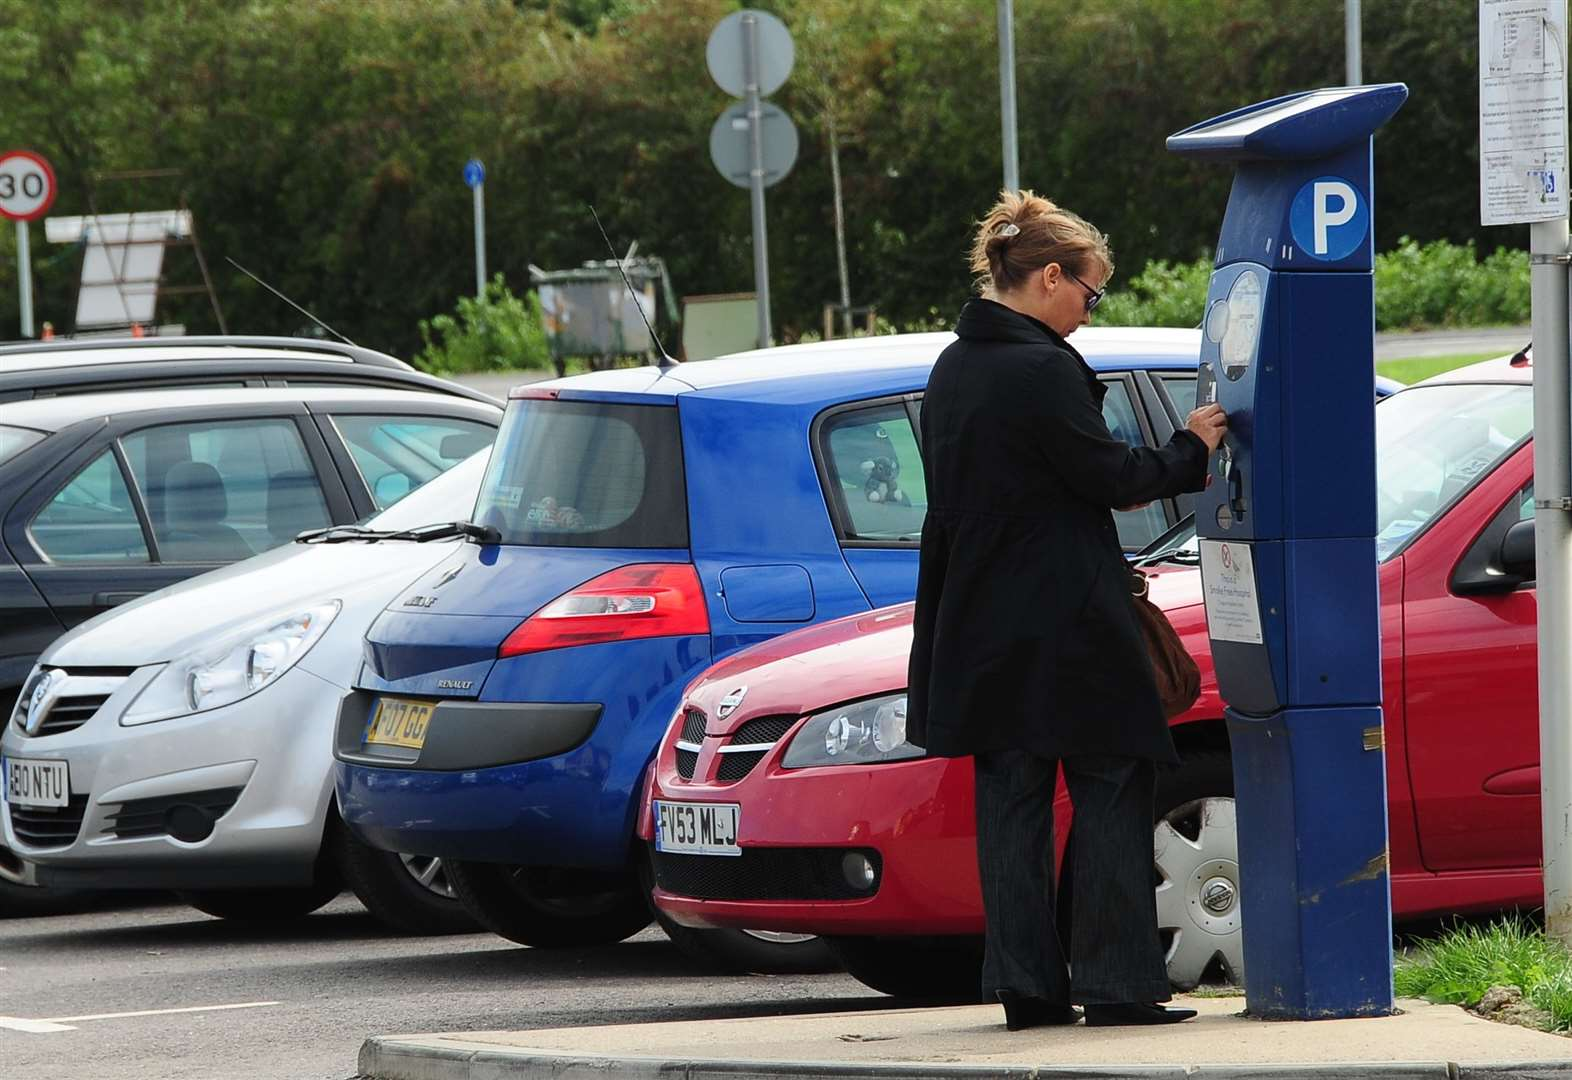 Councils lose millions from car parking charges